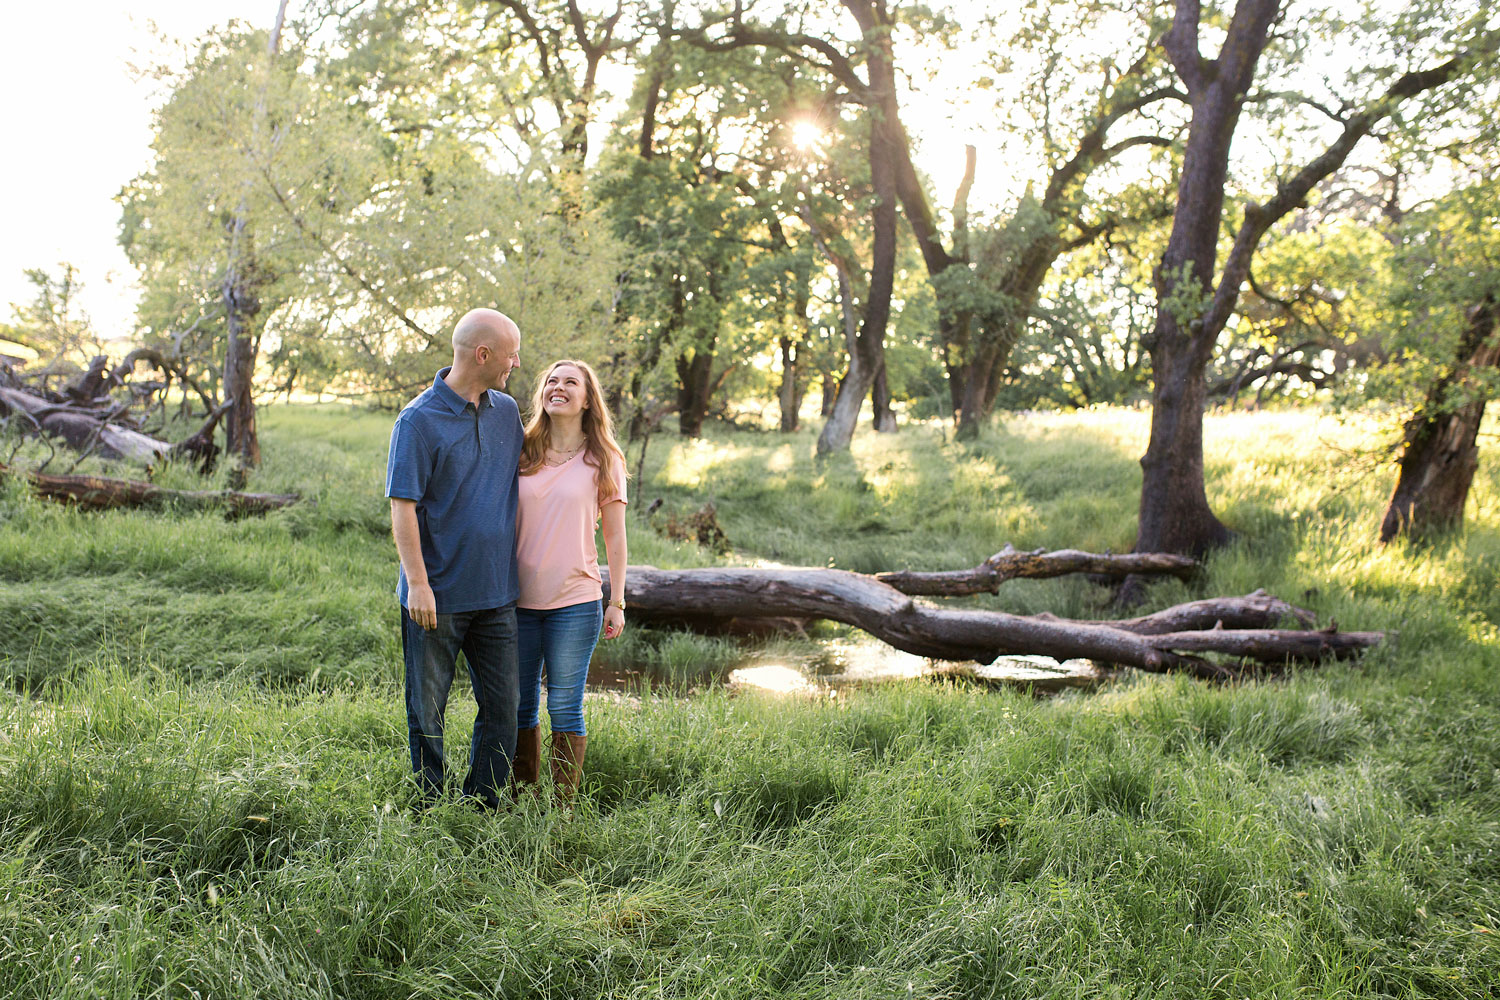 Roseville Family Photographer, Amy Wright Photography, Northern California, Father and Daughter